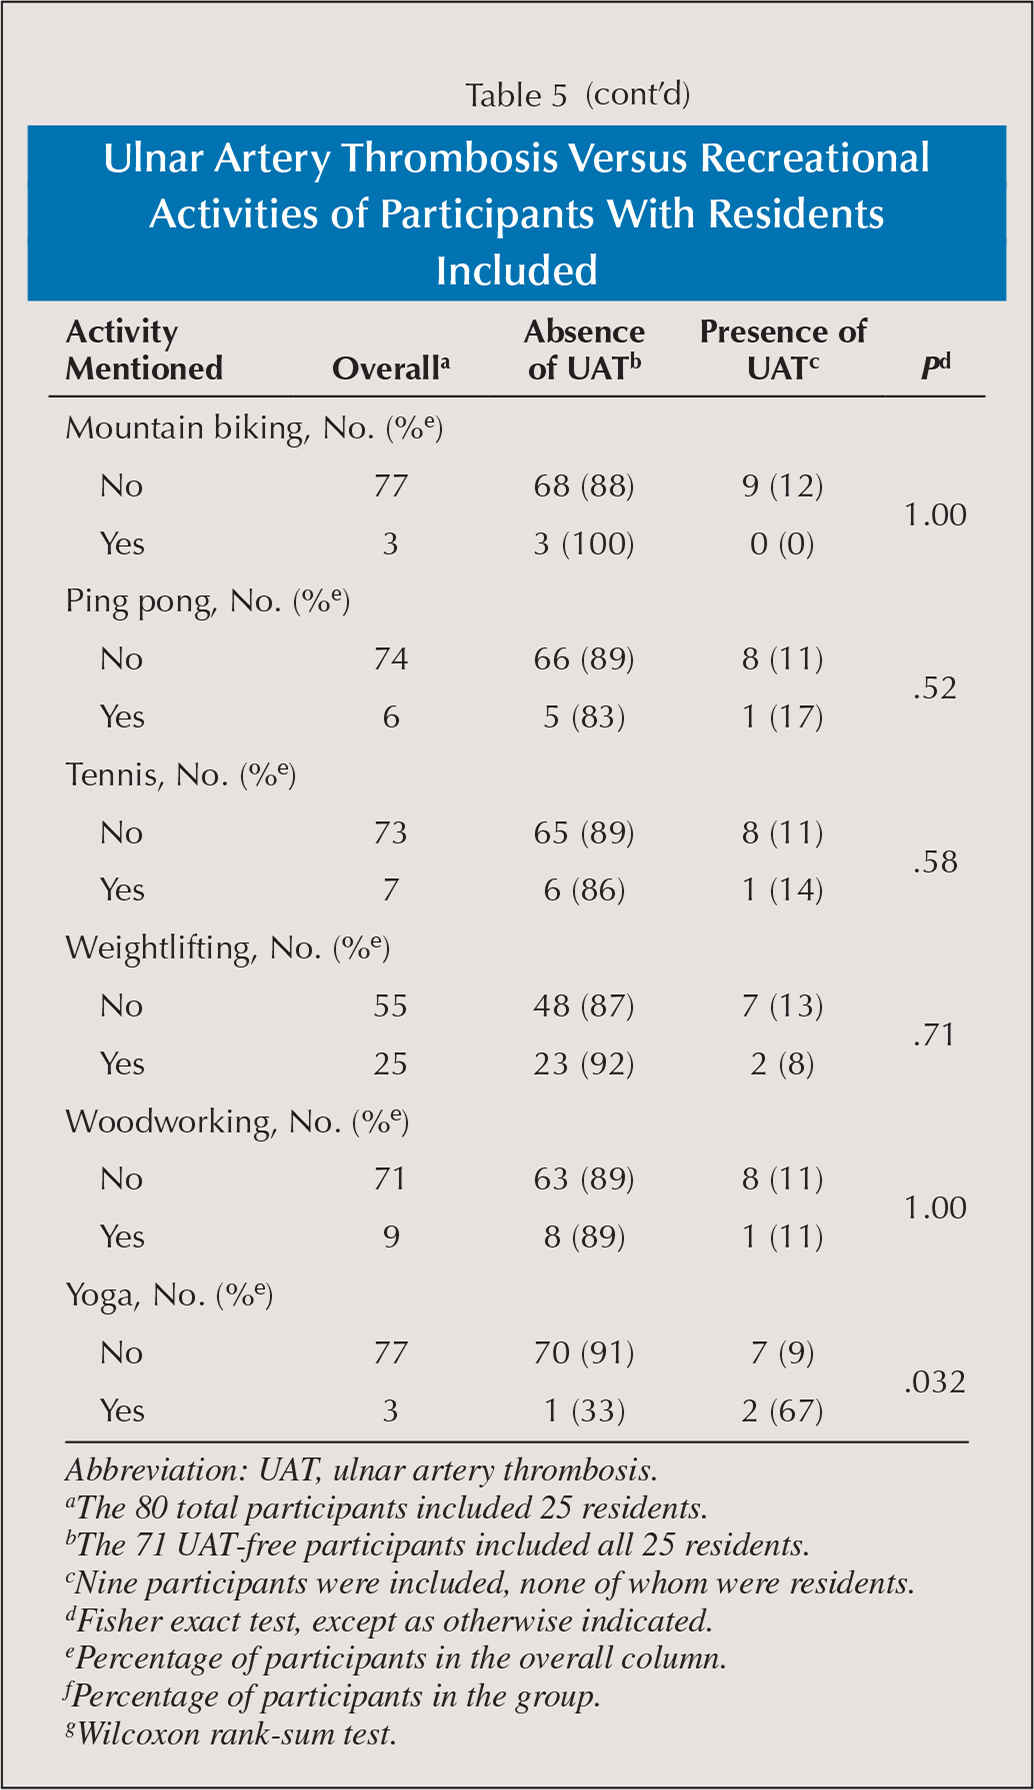 Ulnar Artery Thrombosis Versus Recreational Activities of Participants With Residents Included